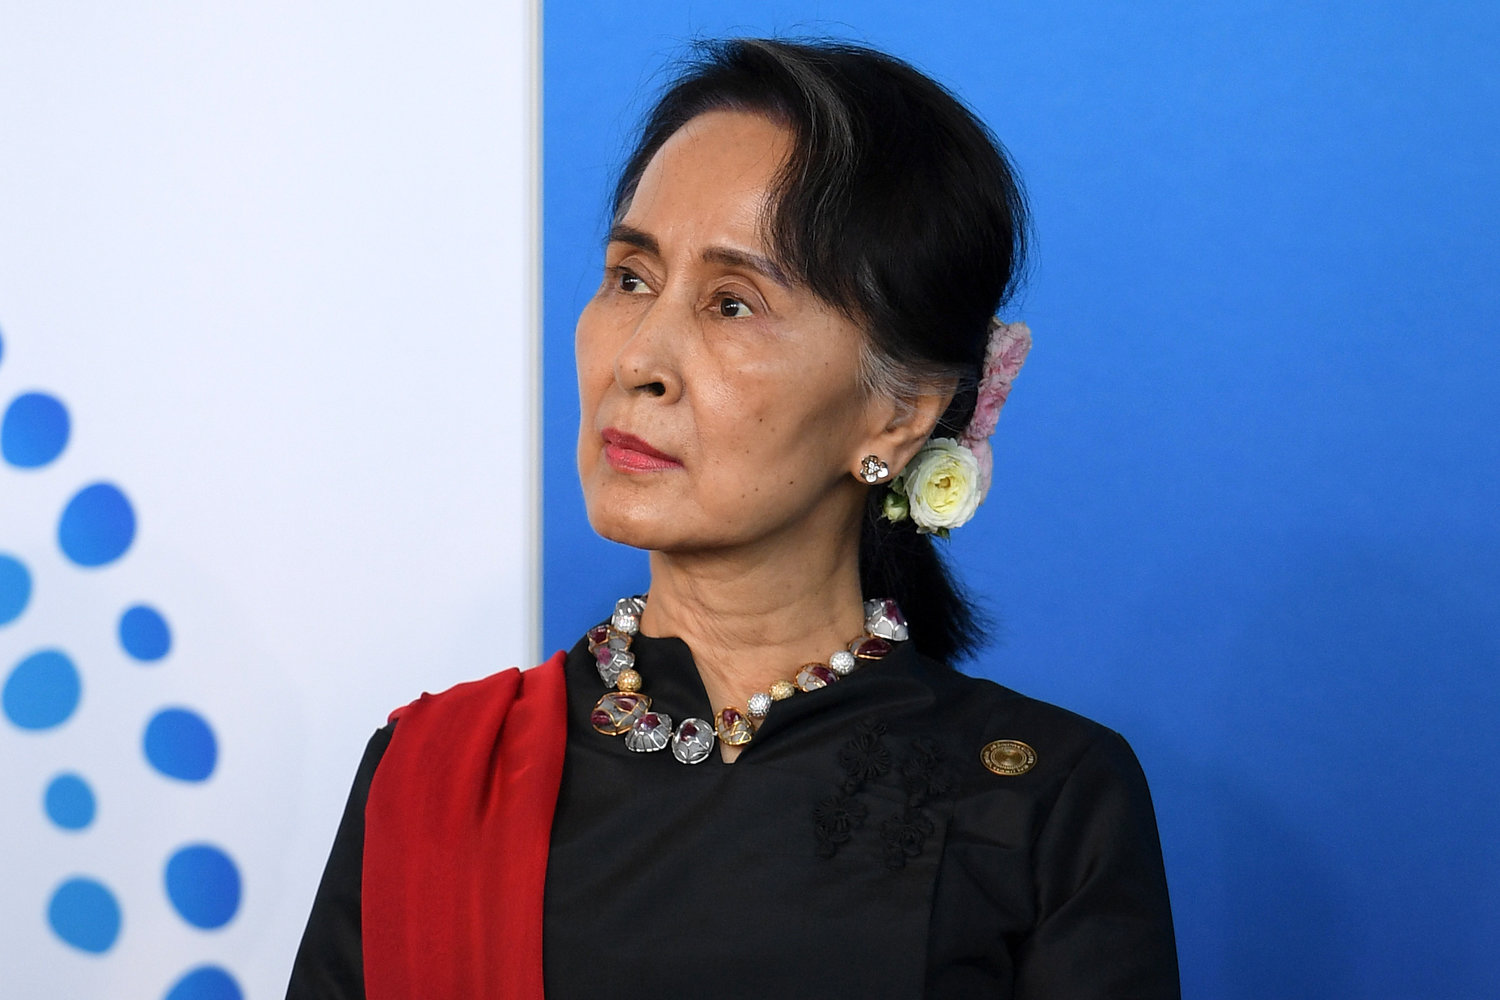 Myanmar State Counsellor Aung San Suu Kyi attends the New Colombo Plan Reception during the ASEAN-Australia Special Summit at the Association of Southeast Asian Nations, ASEAN, special summit on March 17, 2018 in Sydney, Australia.